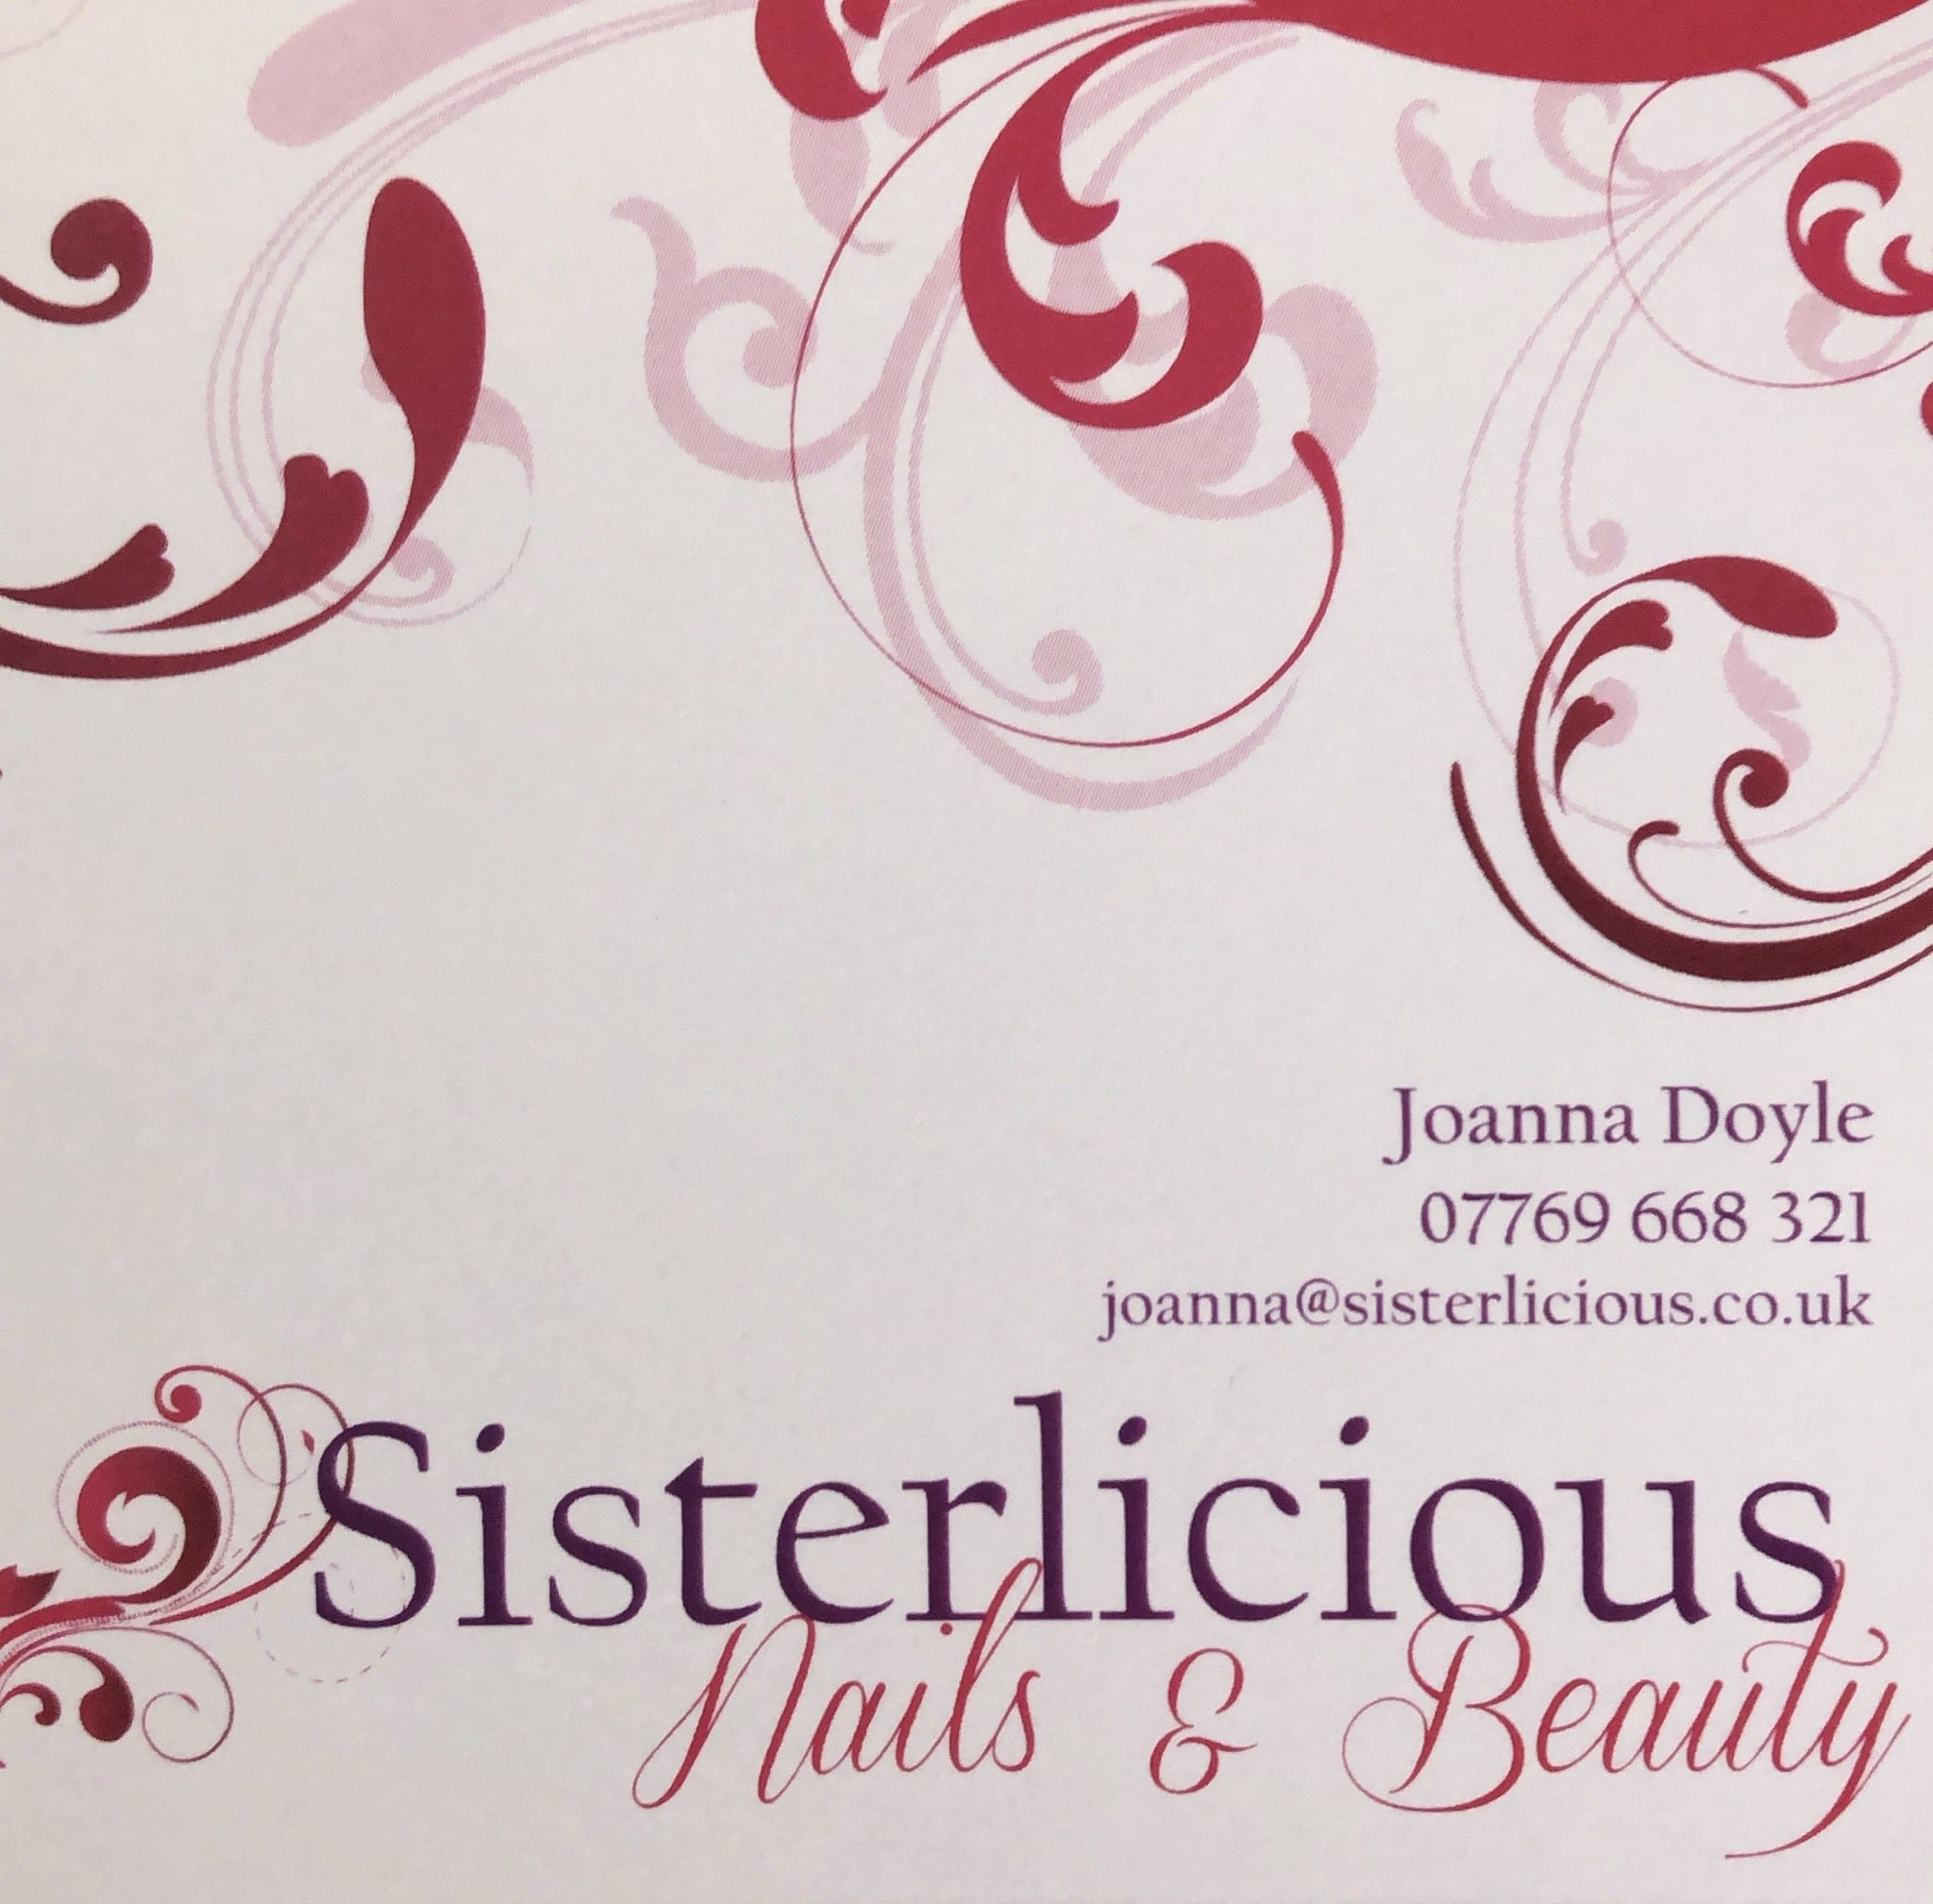 Sisterlicious Nails & Beauty